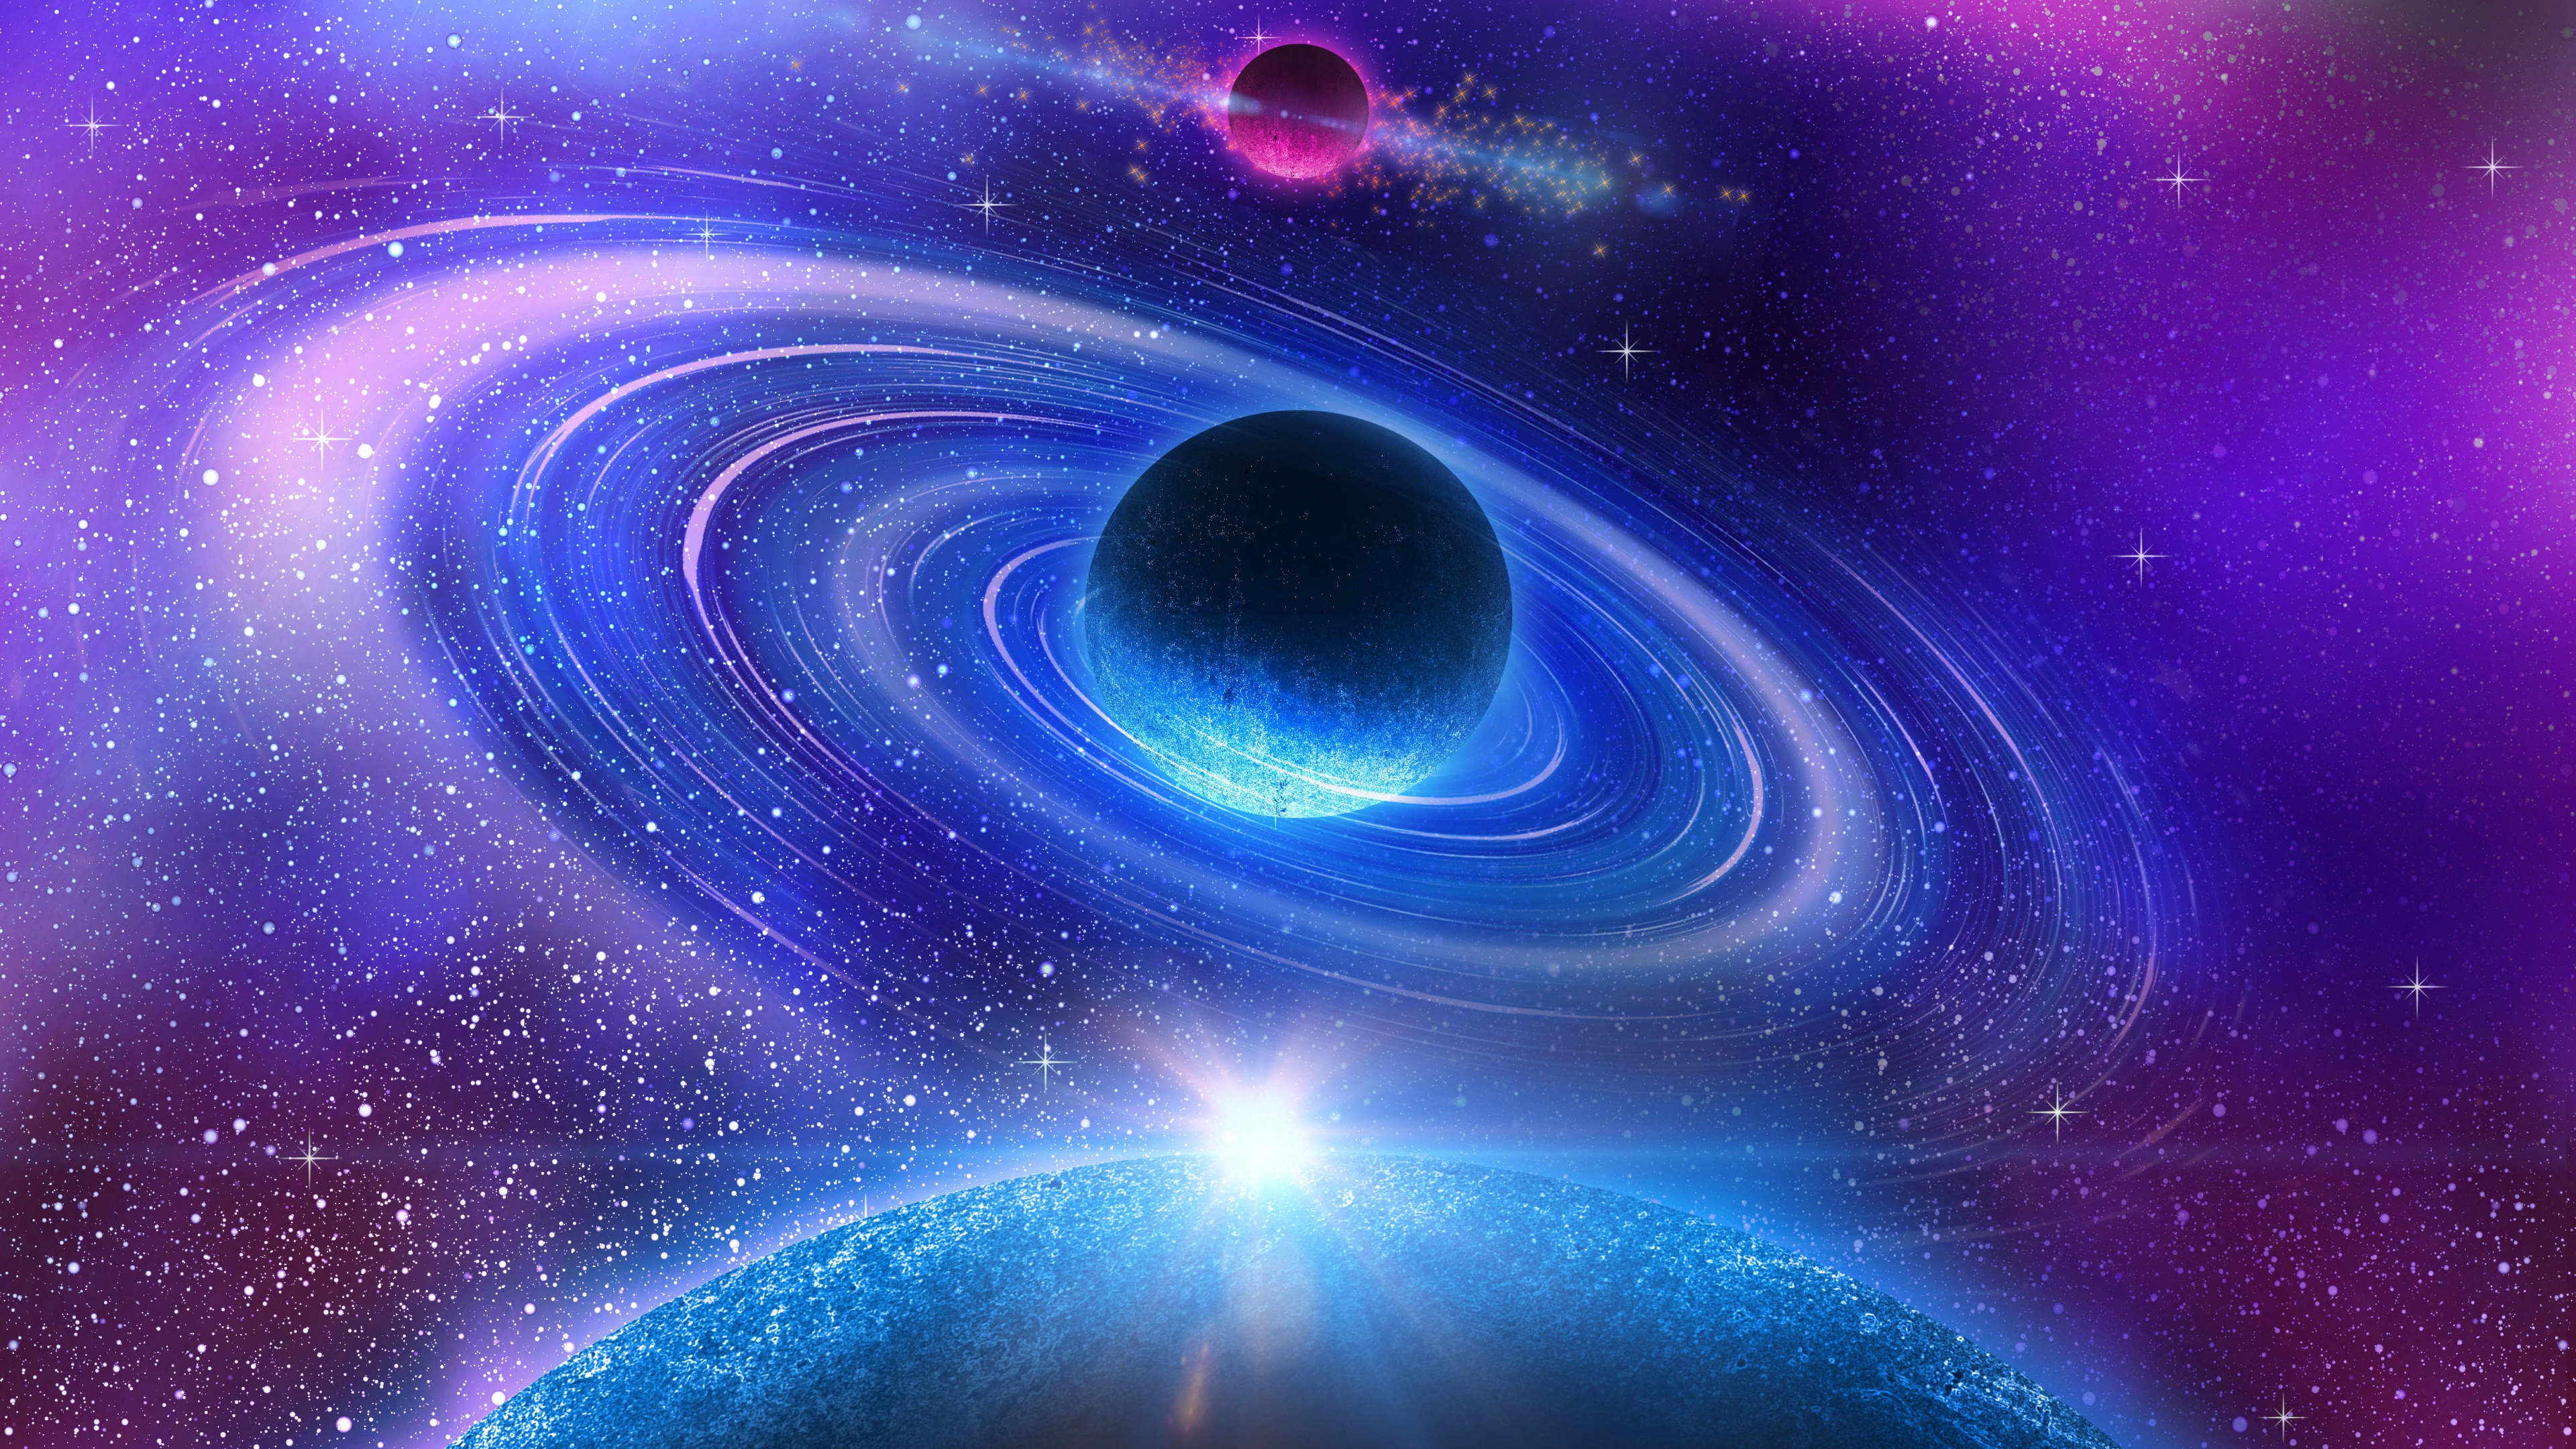 4k space wallpaper wallpapersafari for Wallpaper home 4k